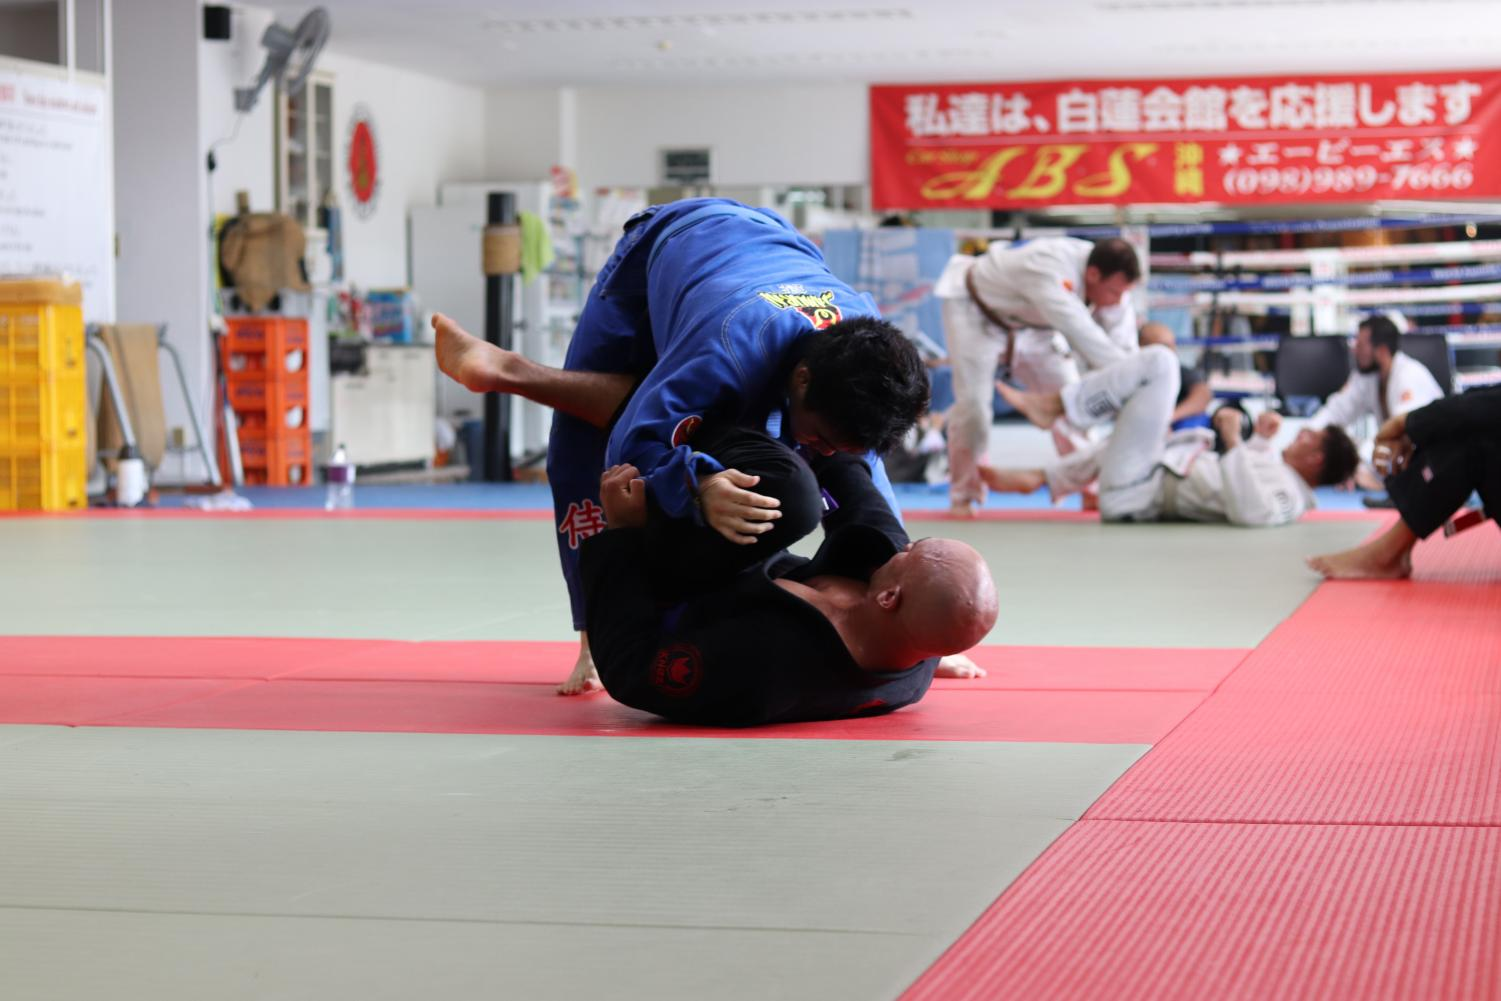 Athletes at play. The photo above is a representation of what the inside of a Krav Maga Studio may look like during a lesson. The Krav Maga program strives to combine ancient elements of self-defense along with  relevant strategies and techniques to combat possible targets.